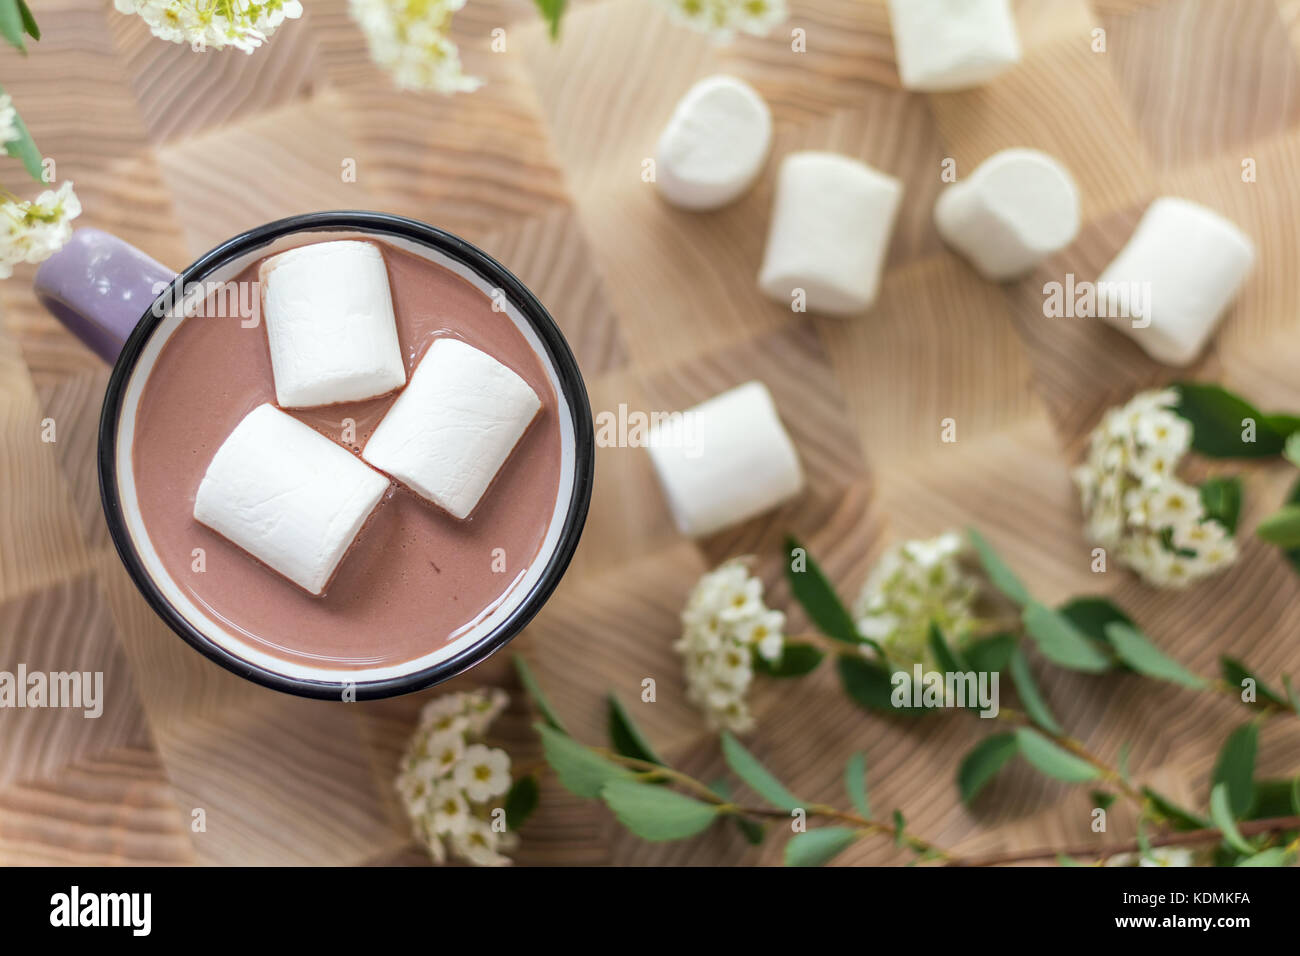 White marshmallows on top of hot cocoa in pink cup.  Fresh white spring flowers and more marshmallows are scattered - Stock Image